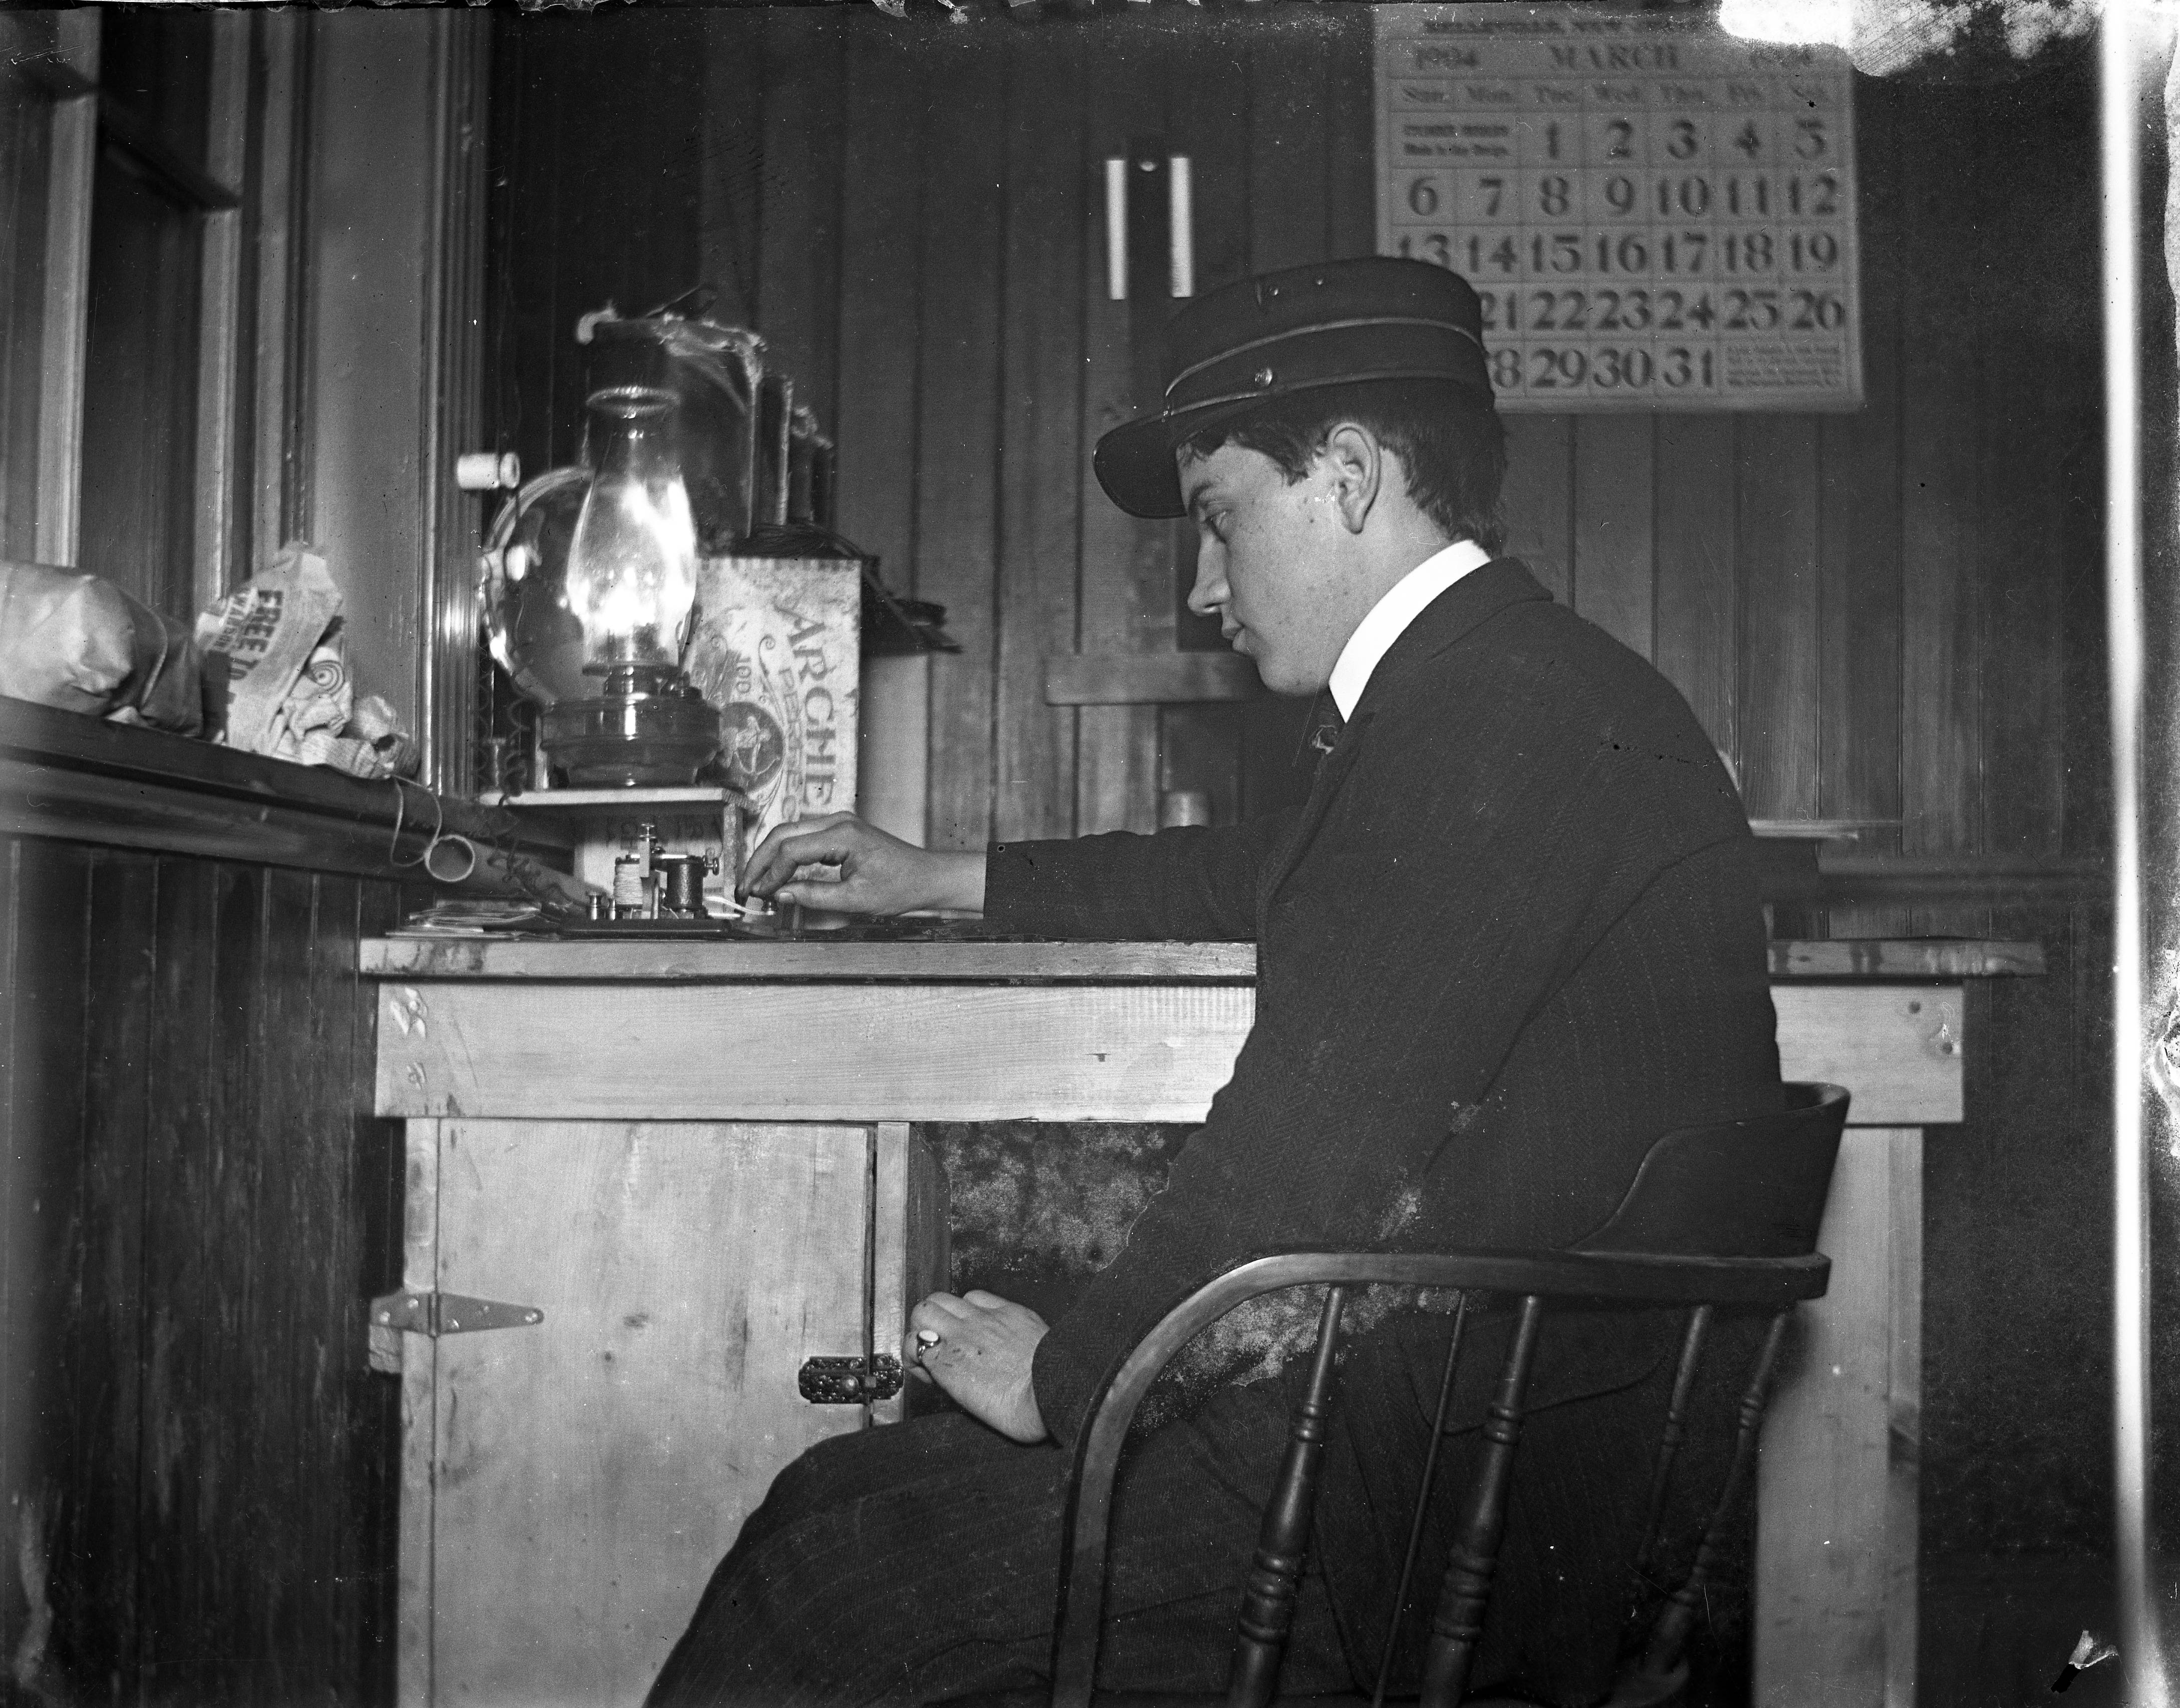 Black and white image of a telegraph operator at work in an office in 1904.